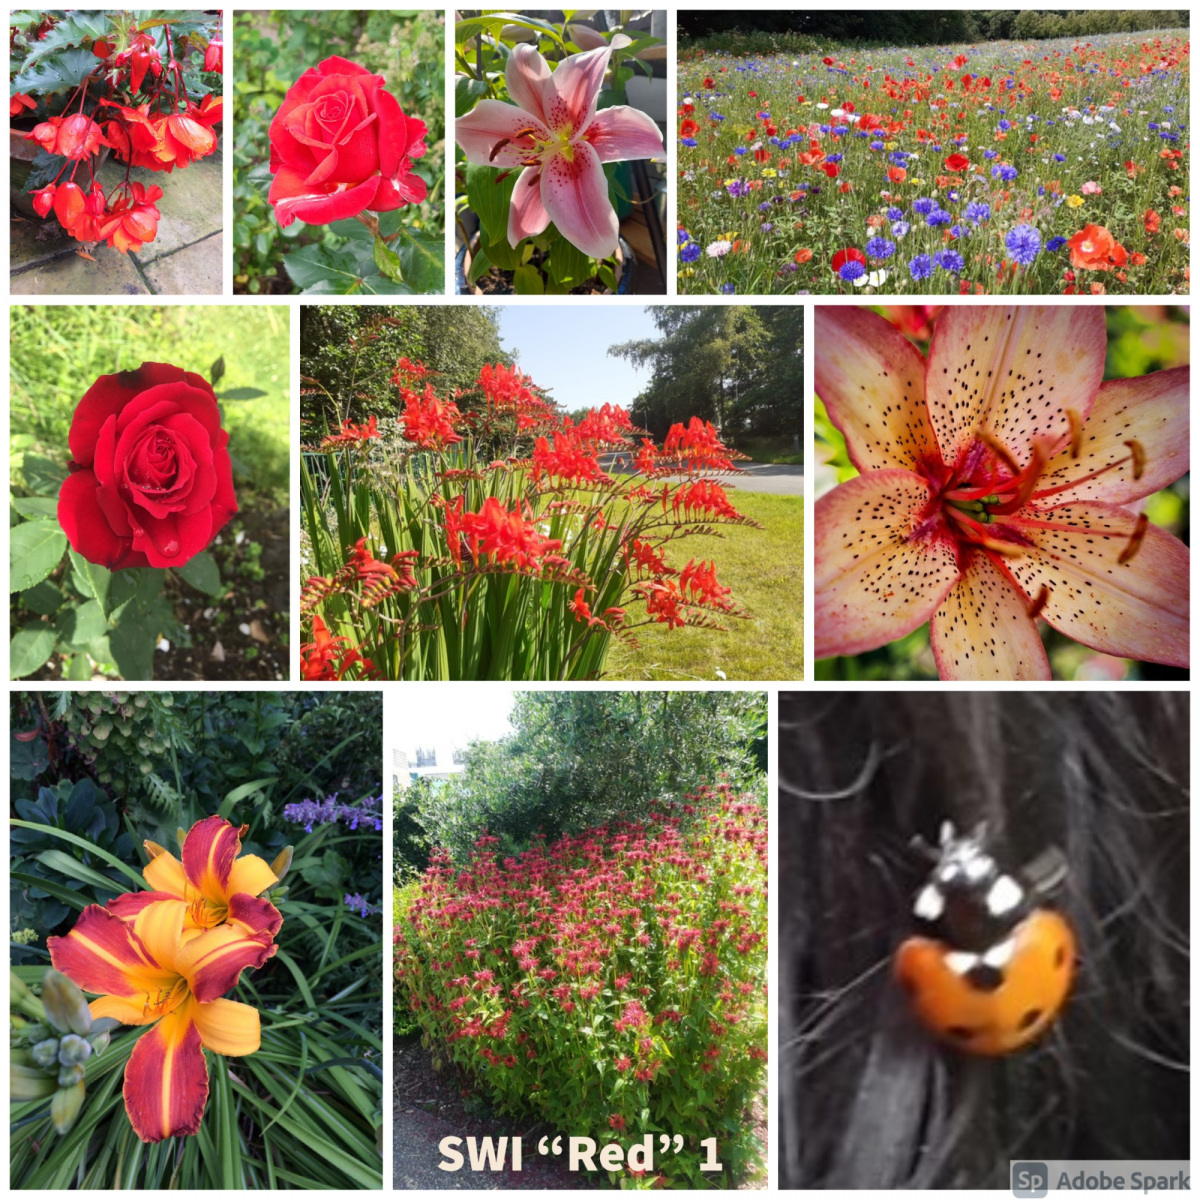 SWI-Red-part1